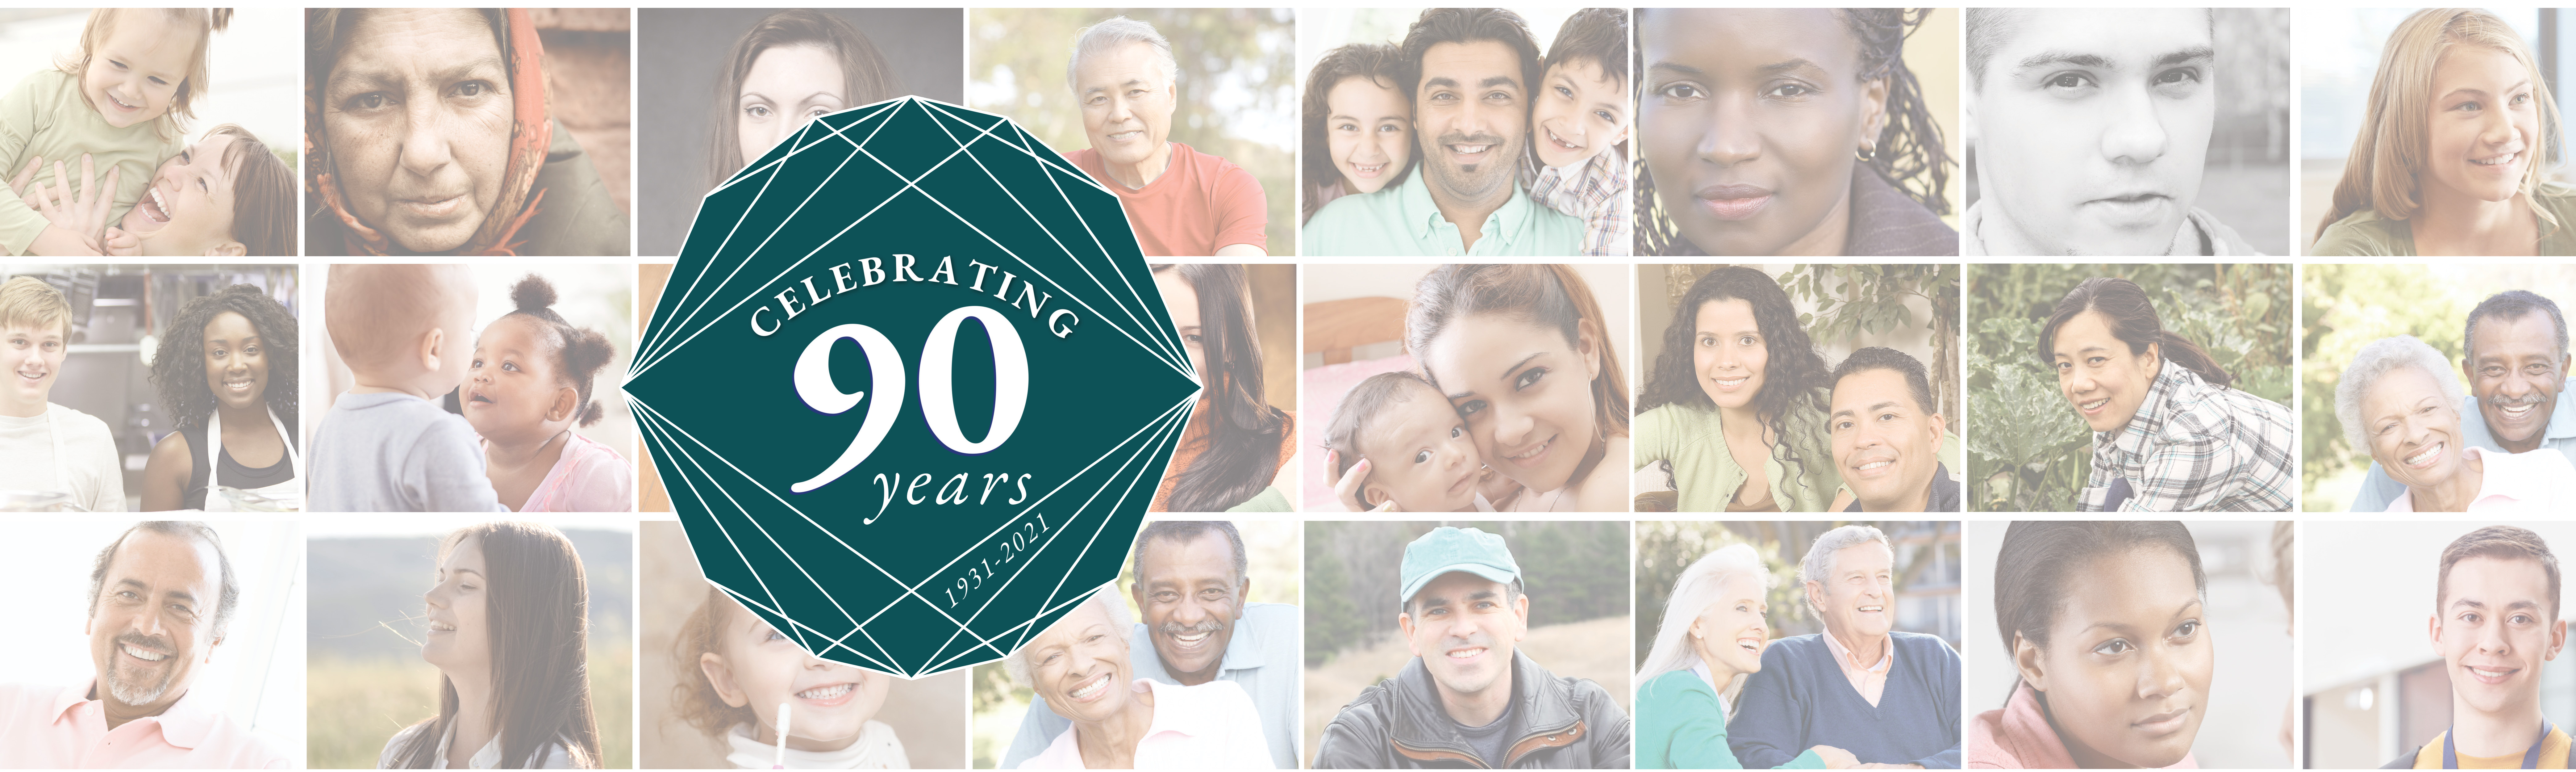 Celebrating our 90th Anniversarywith 90 Faces of Hope